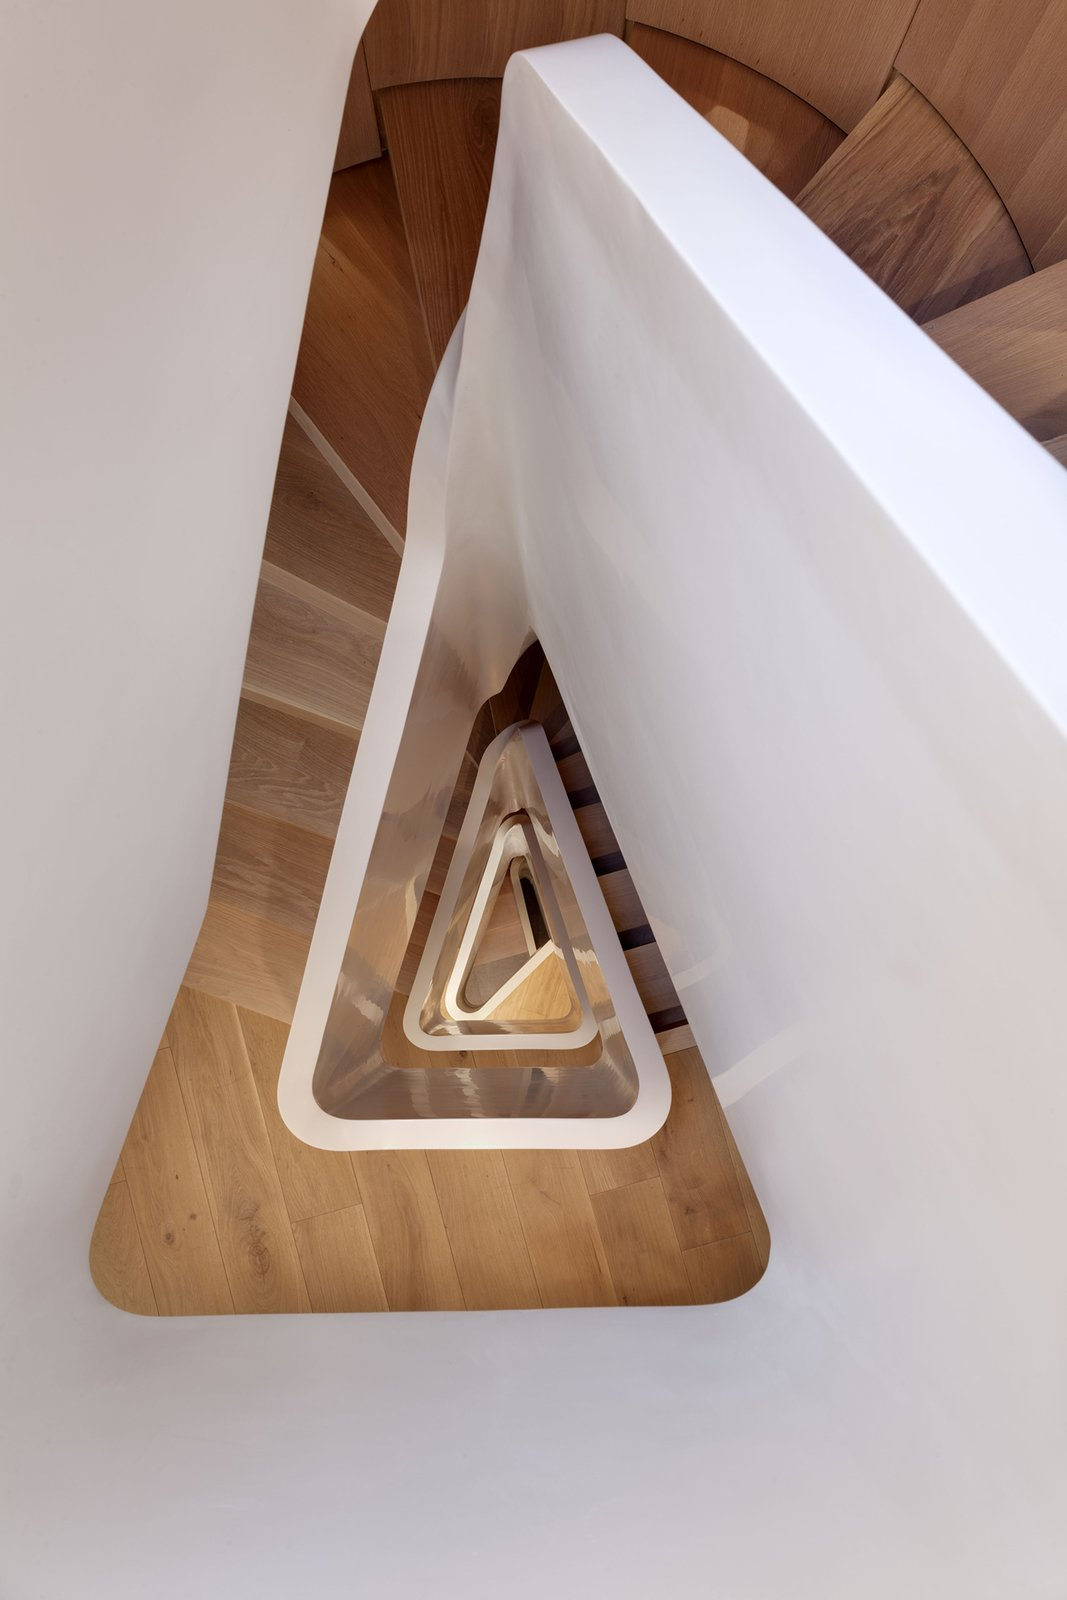 The staircase is about 46 feet tall from top to bottom. Tagged: Staircase and Wood Tread.  190+ Best Modern Staircase Ideas by Dwell from Amazing Five-Story Staircase Twists Through a Narrow London Home